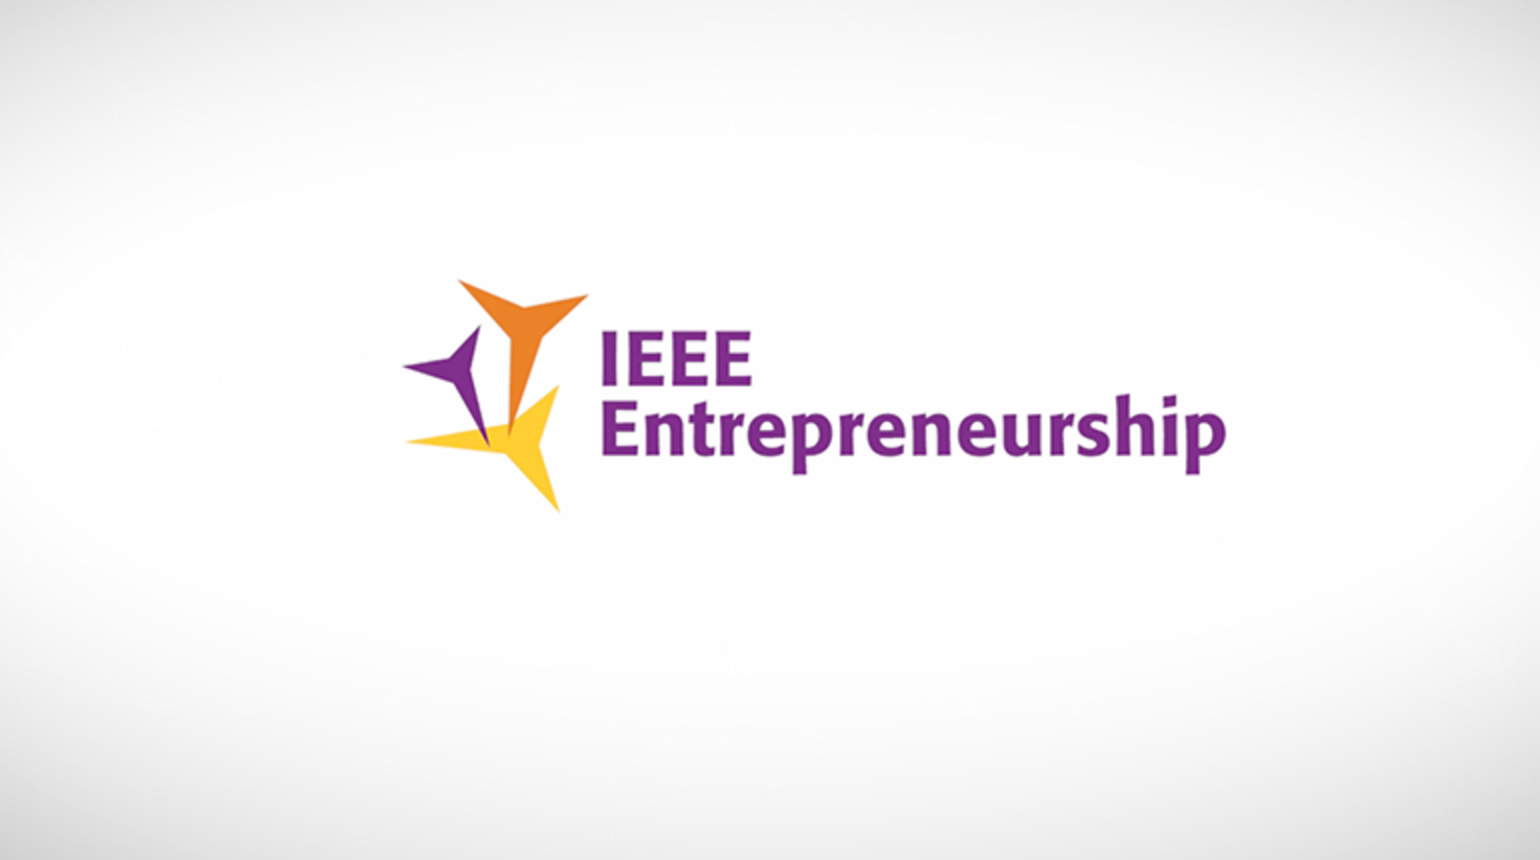 What is IEEE Entrepreneurship